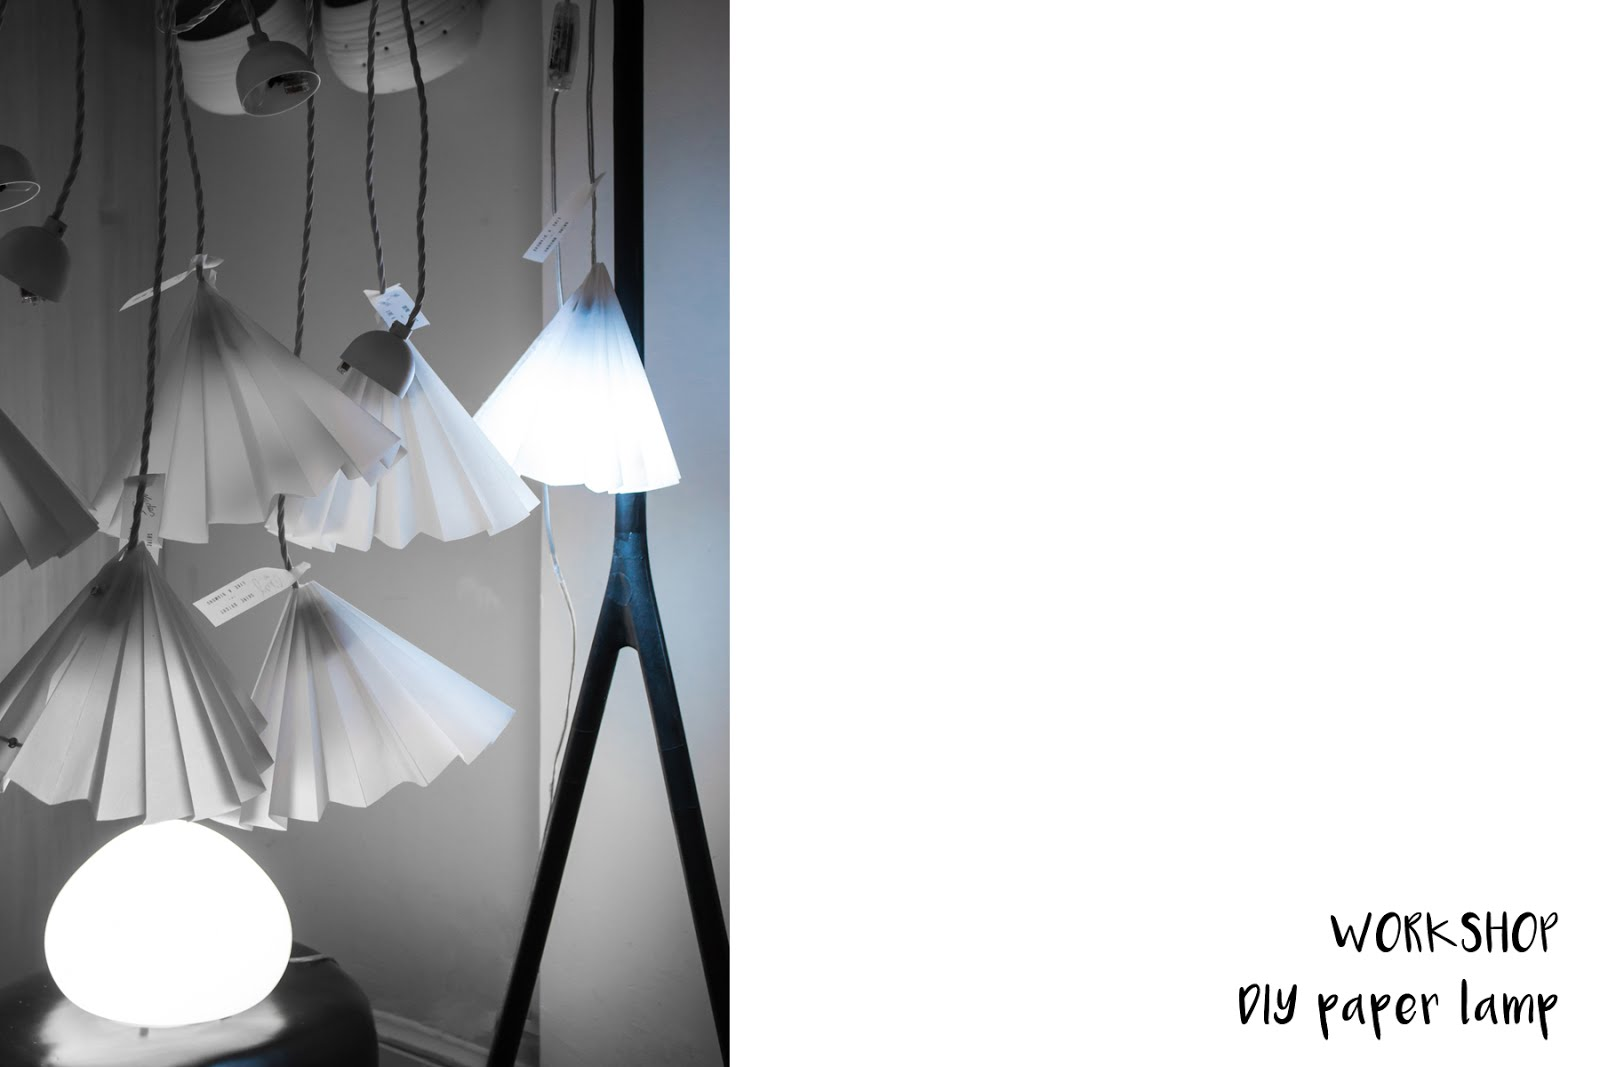 Philips hue, wireless light, wellbeing, event, hotel julien antwerp, diy paper lamp